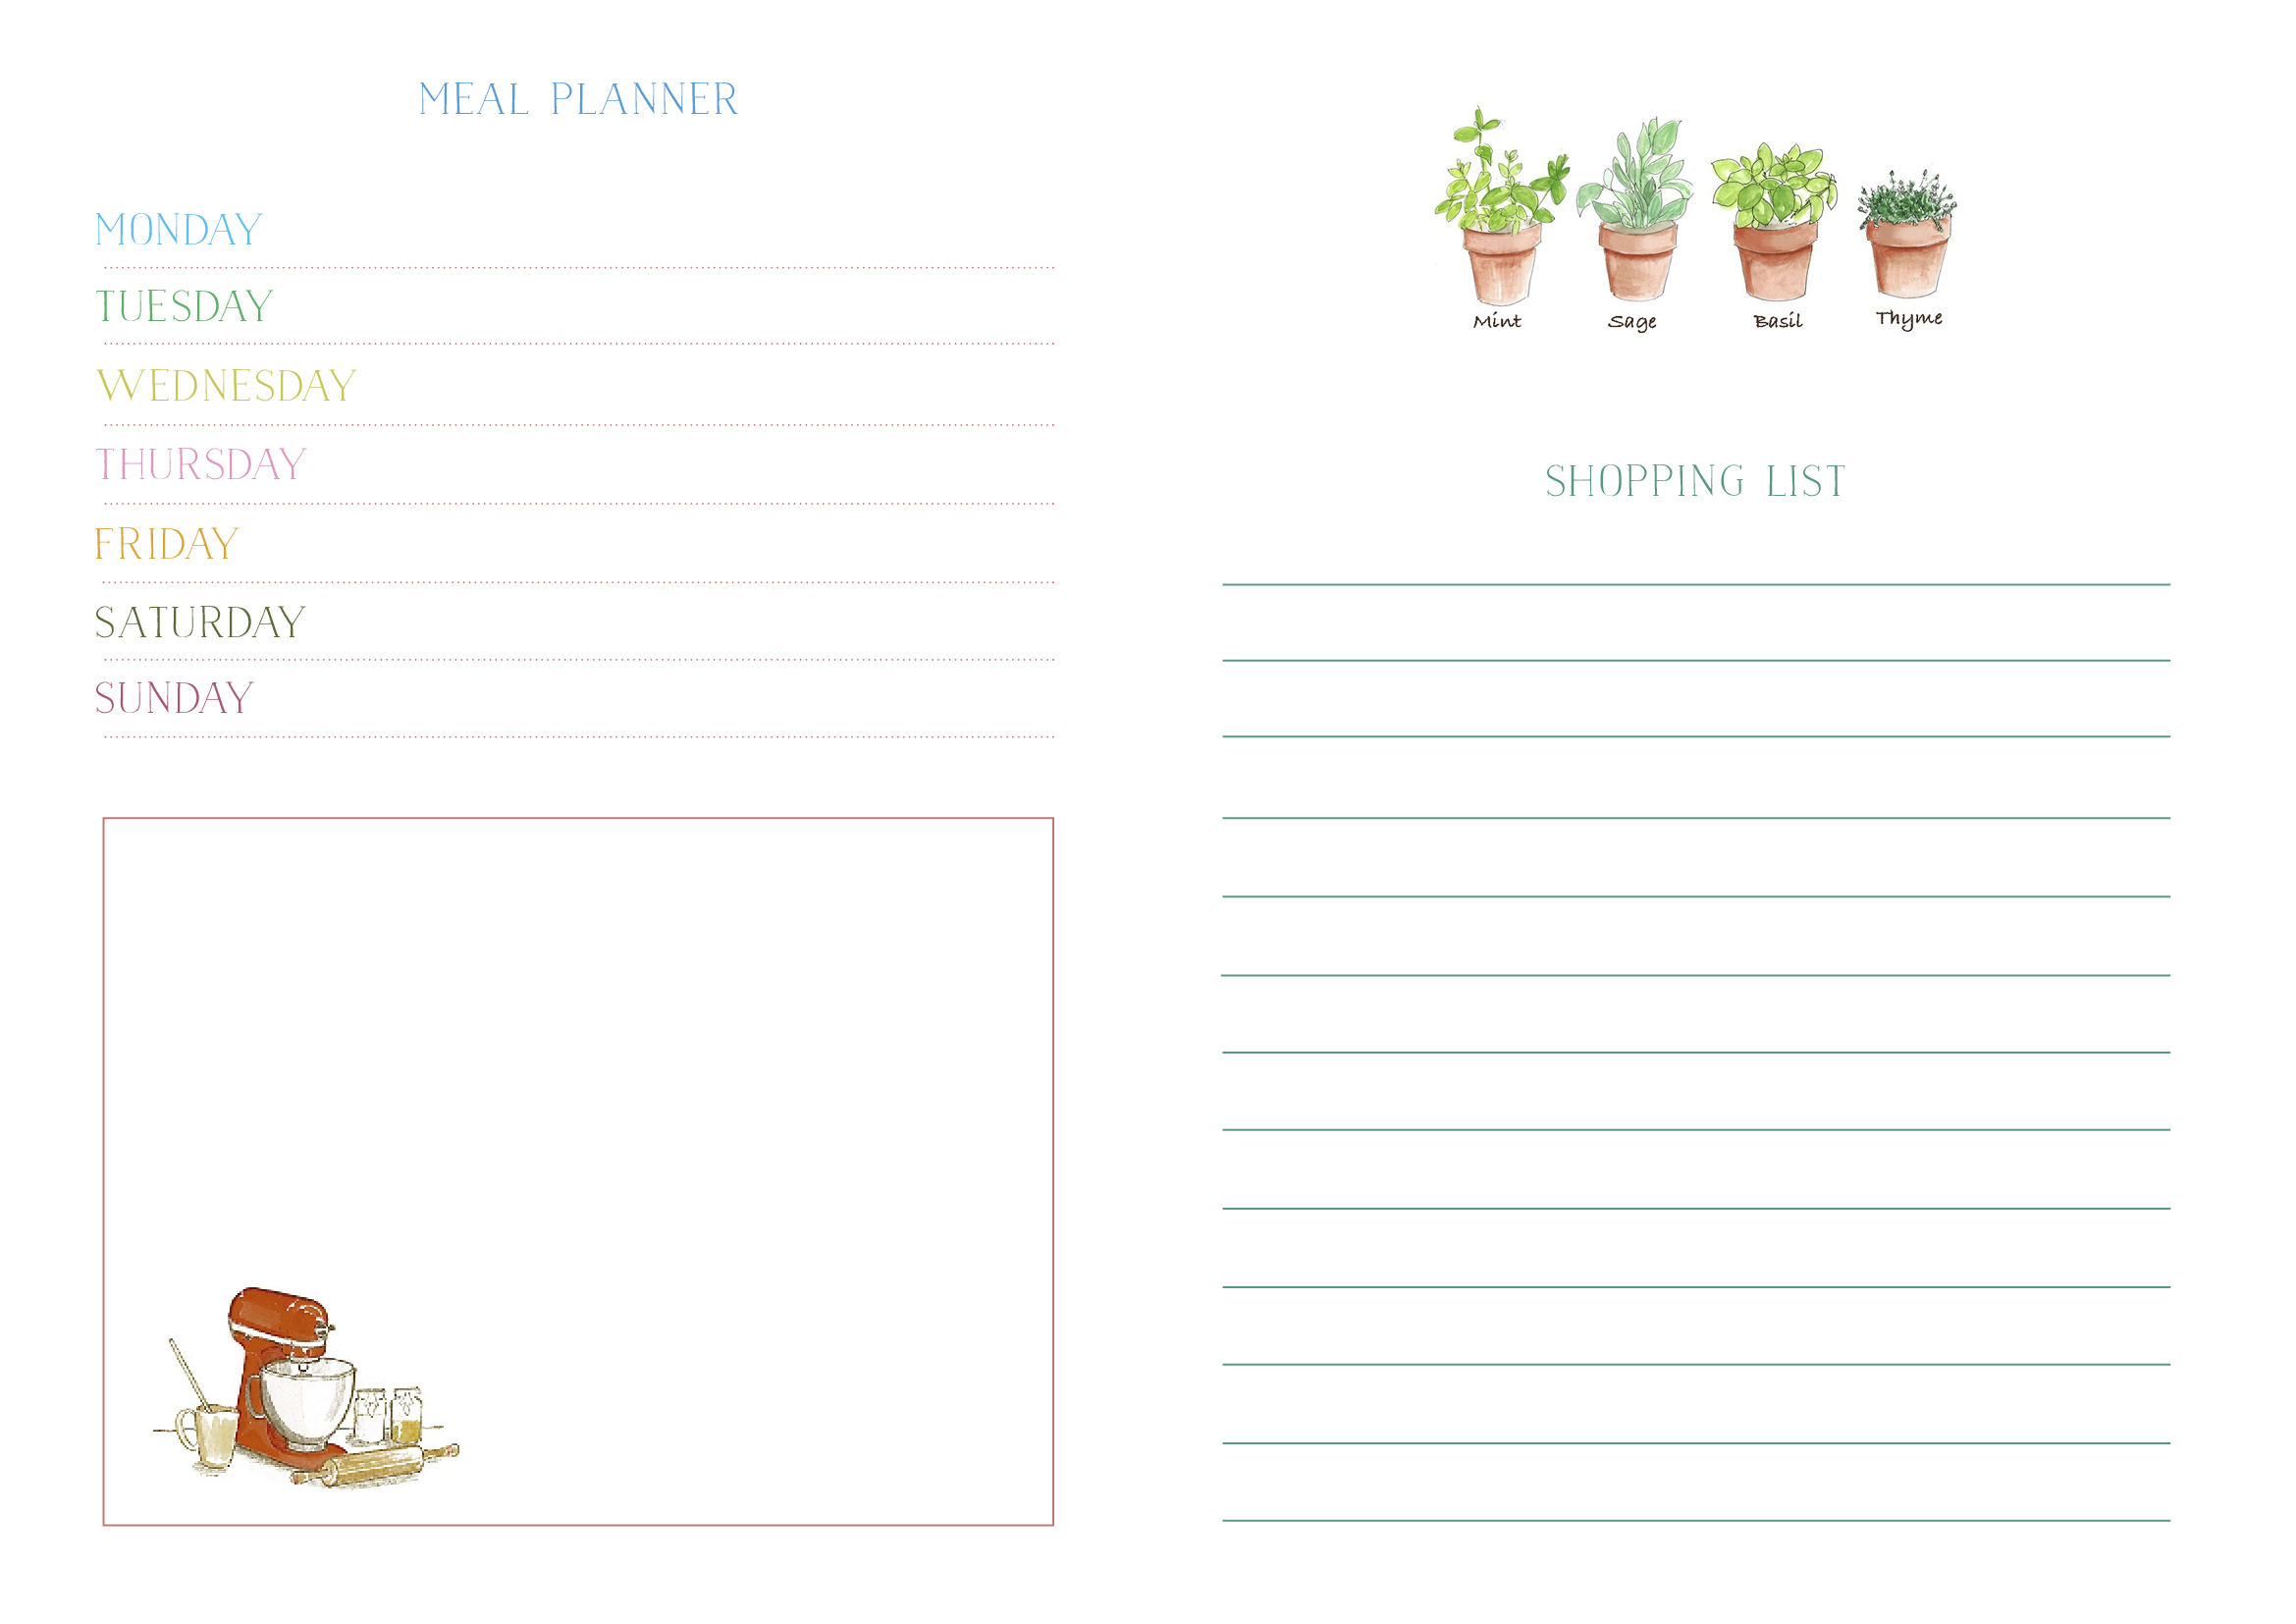 Free Meal Planner and Shopping List printable